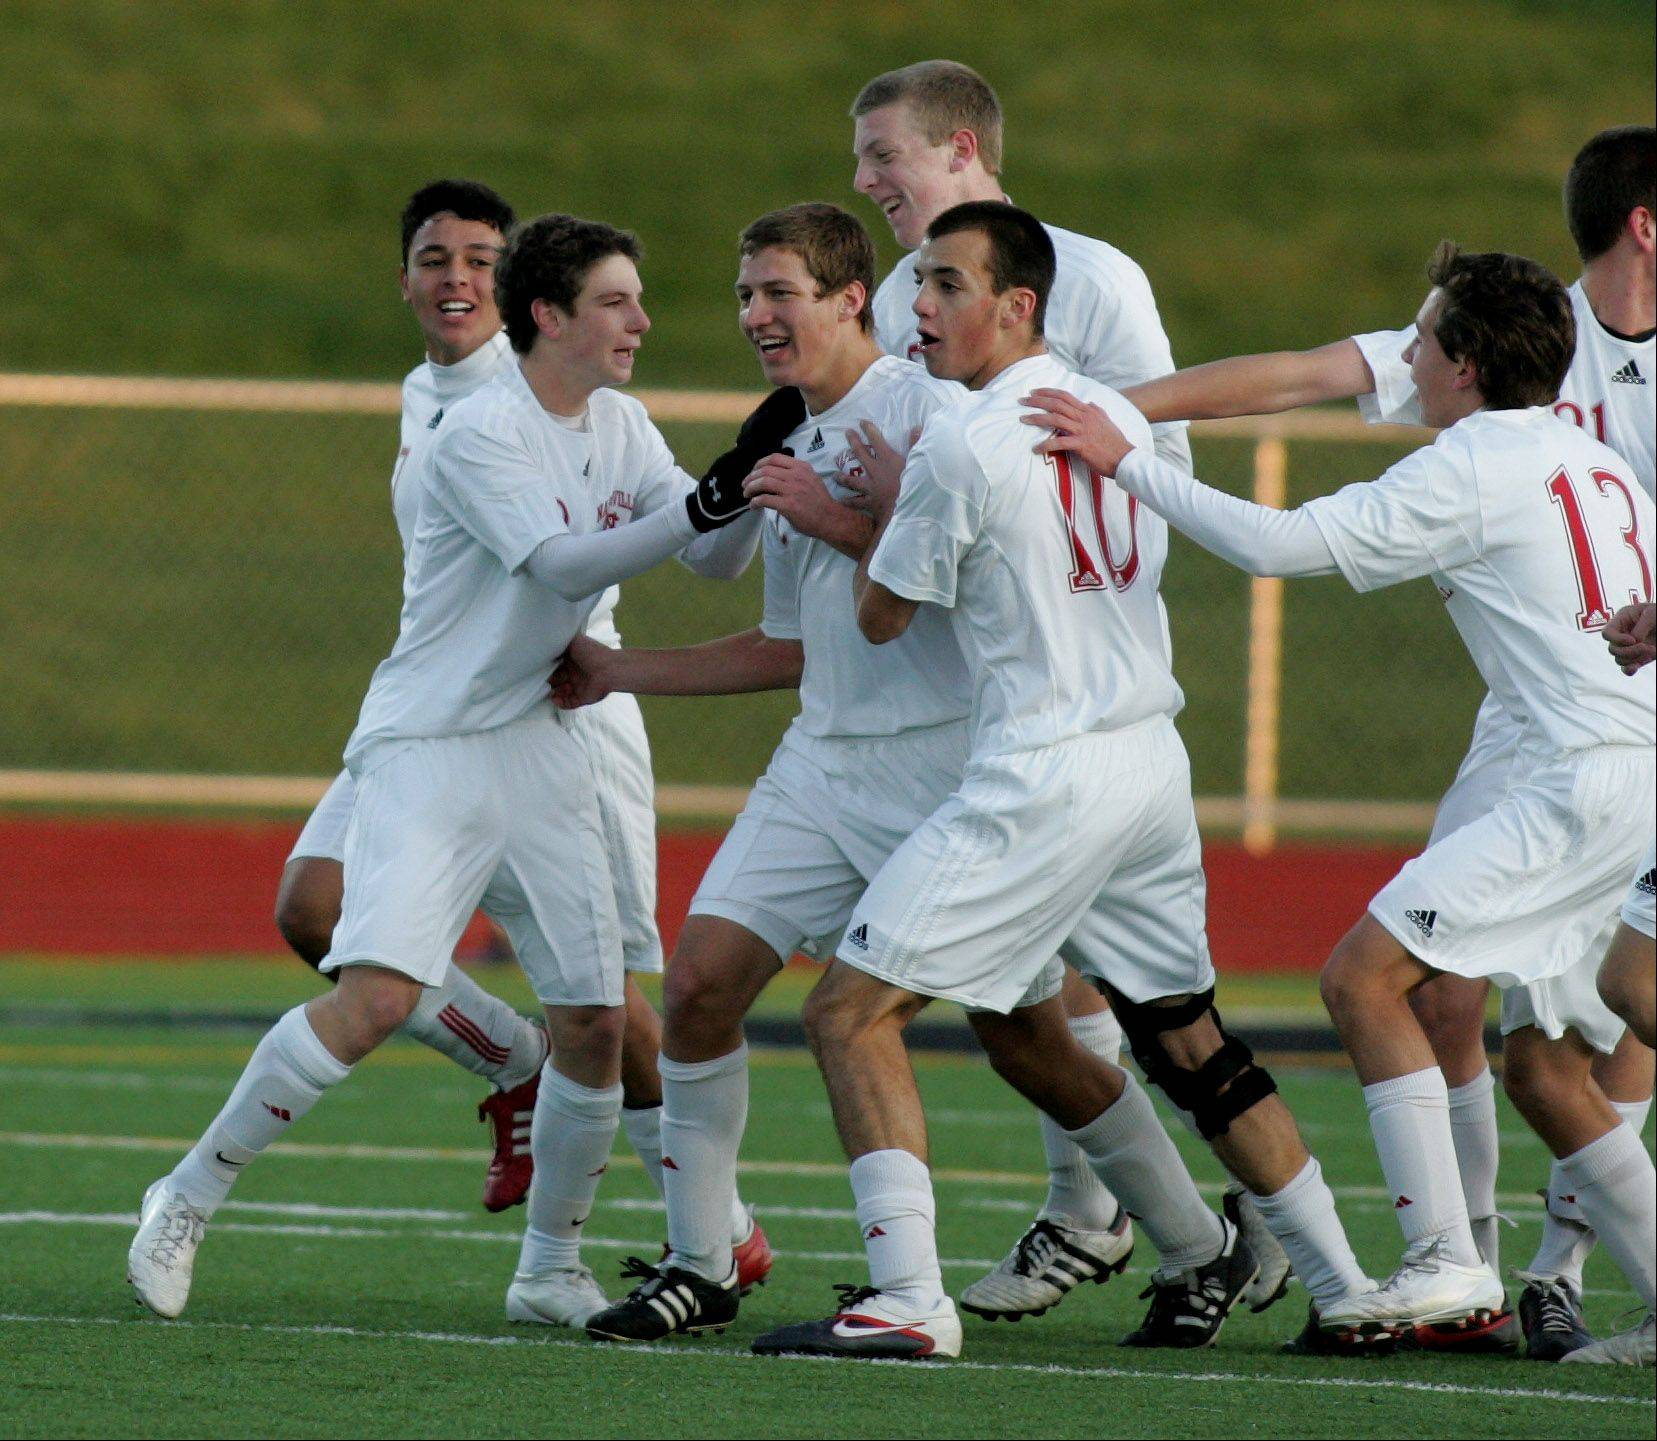 Naperville Central celebrates a goal by Adam Hamlielec, third from left, in action against Fremd in Class 3A state soccer semifinals Friday at Lincoln-Way North High School in Frankfort.